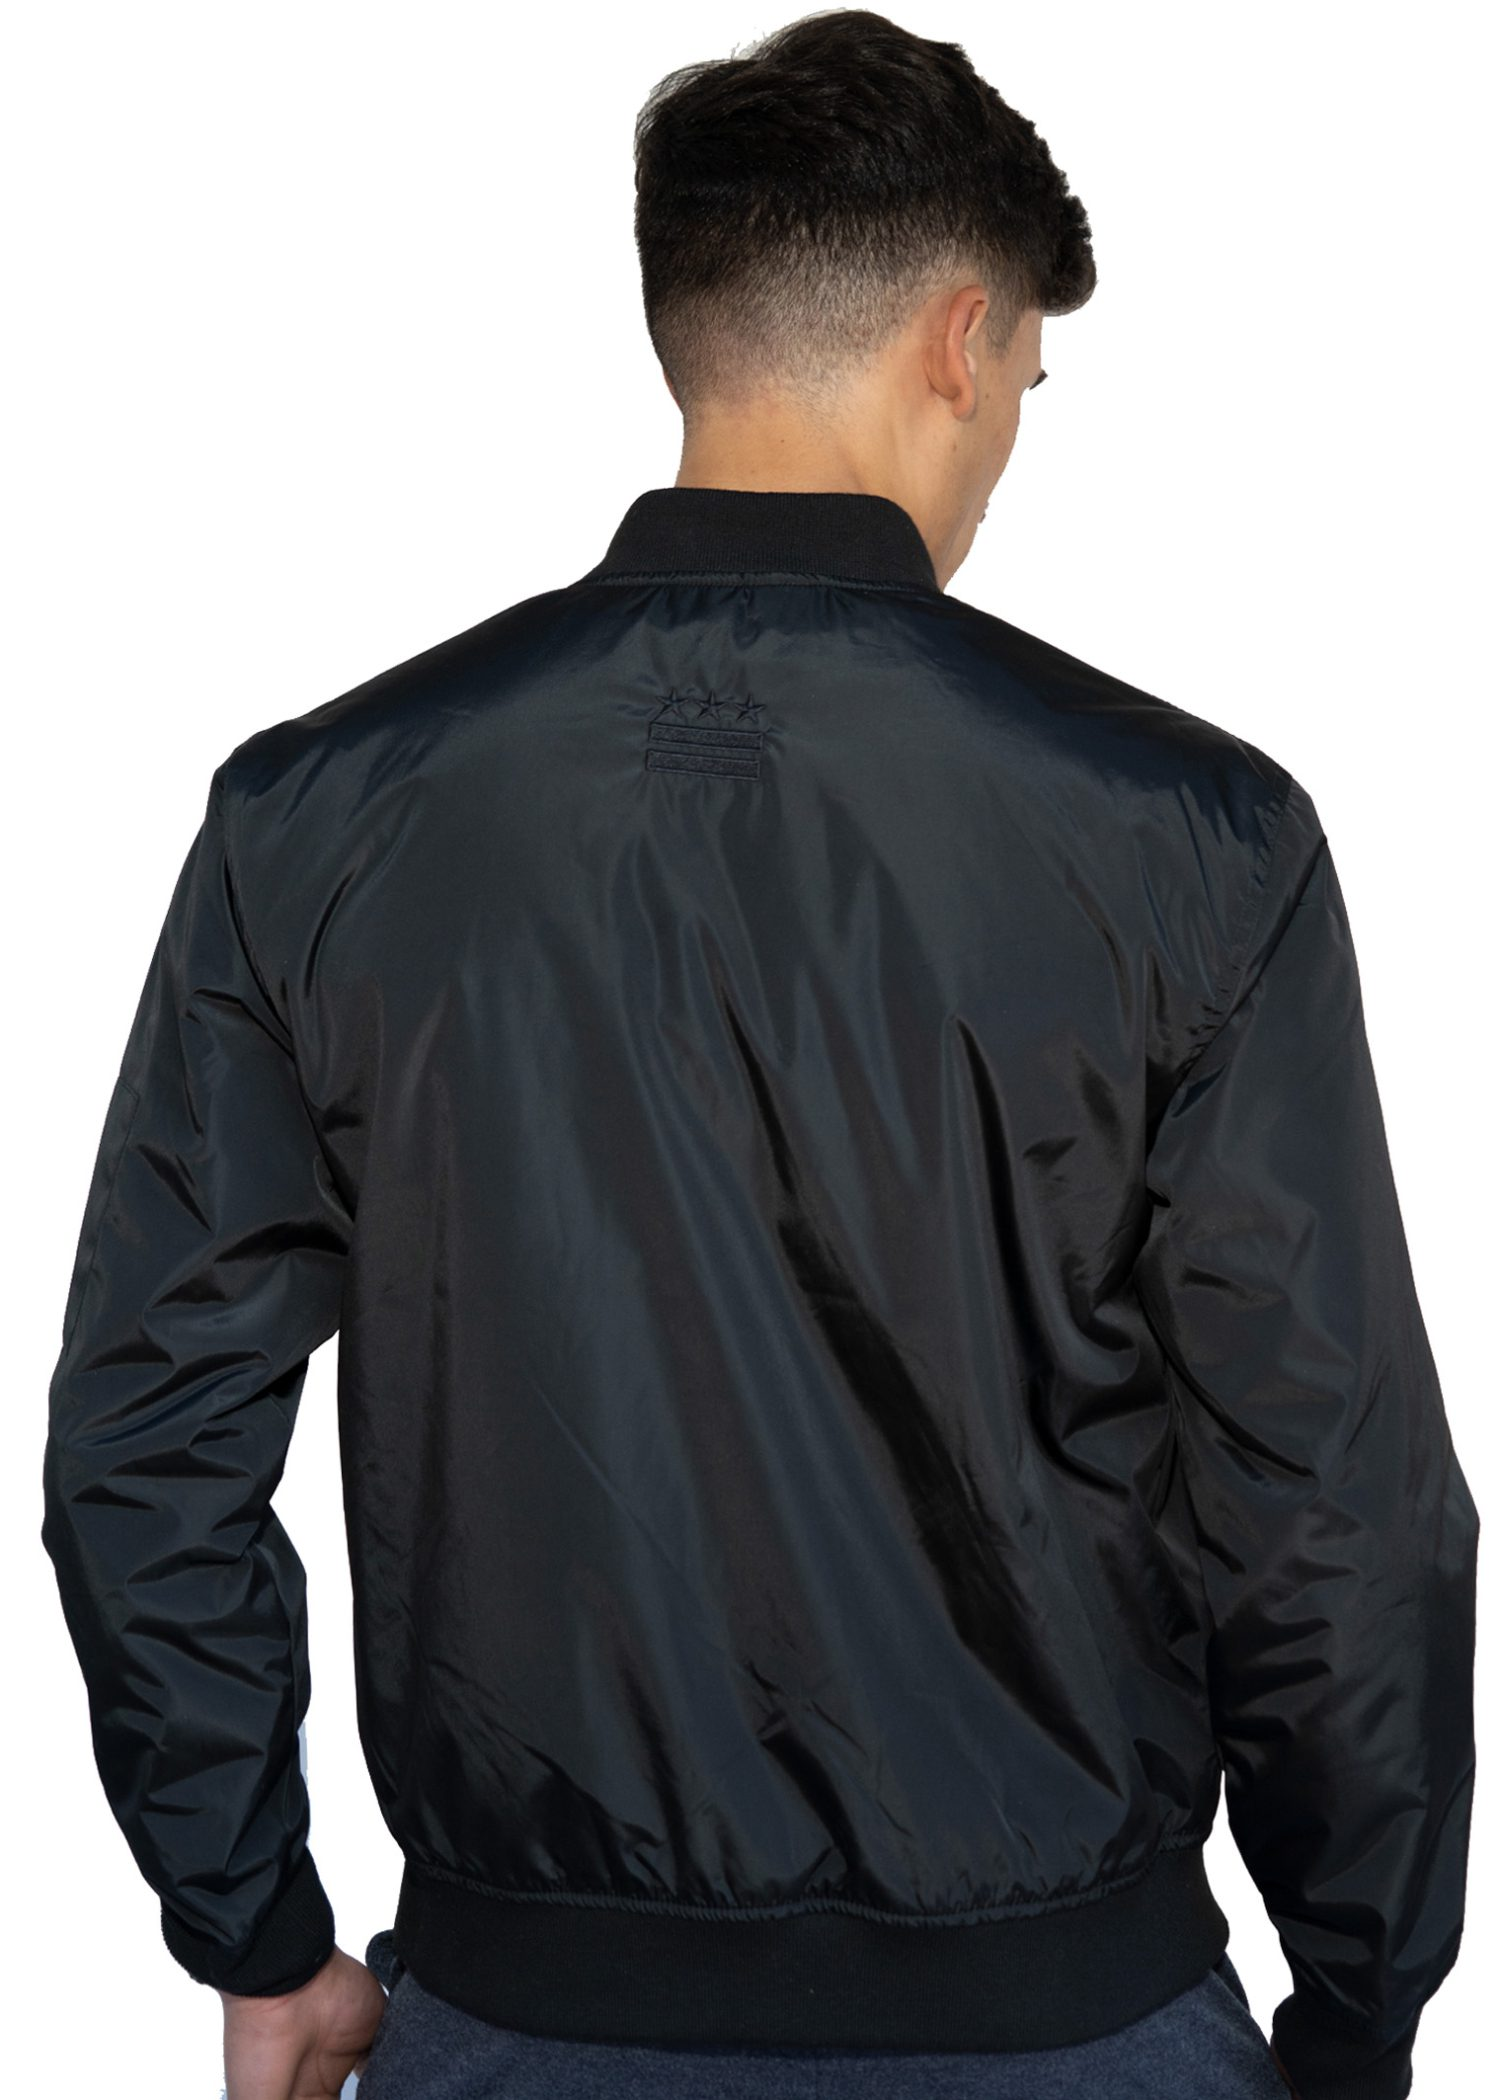 GG 900 BLACK BLK BOMBER- PLAIN